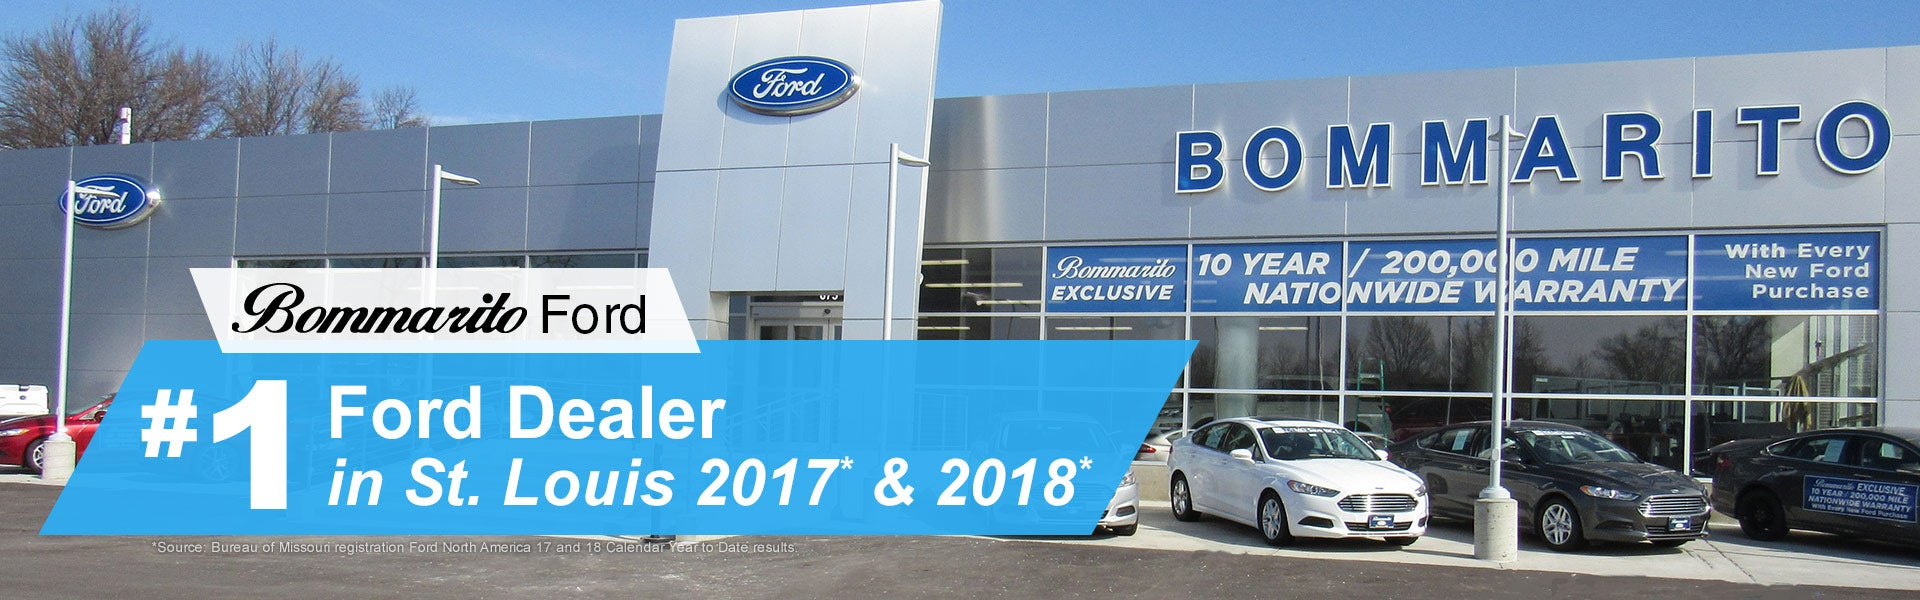 Ford Dealers St Louis >> Bommarito Ford Hazelwood Mo New Used Ford Dealership